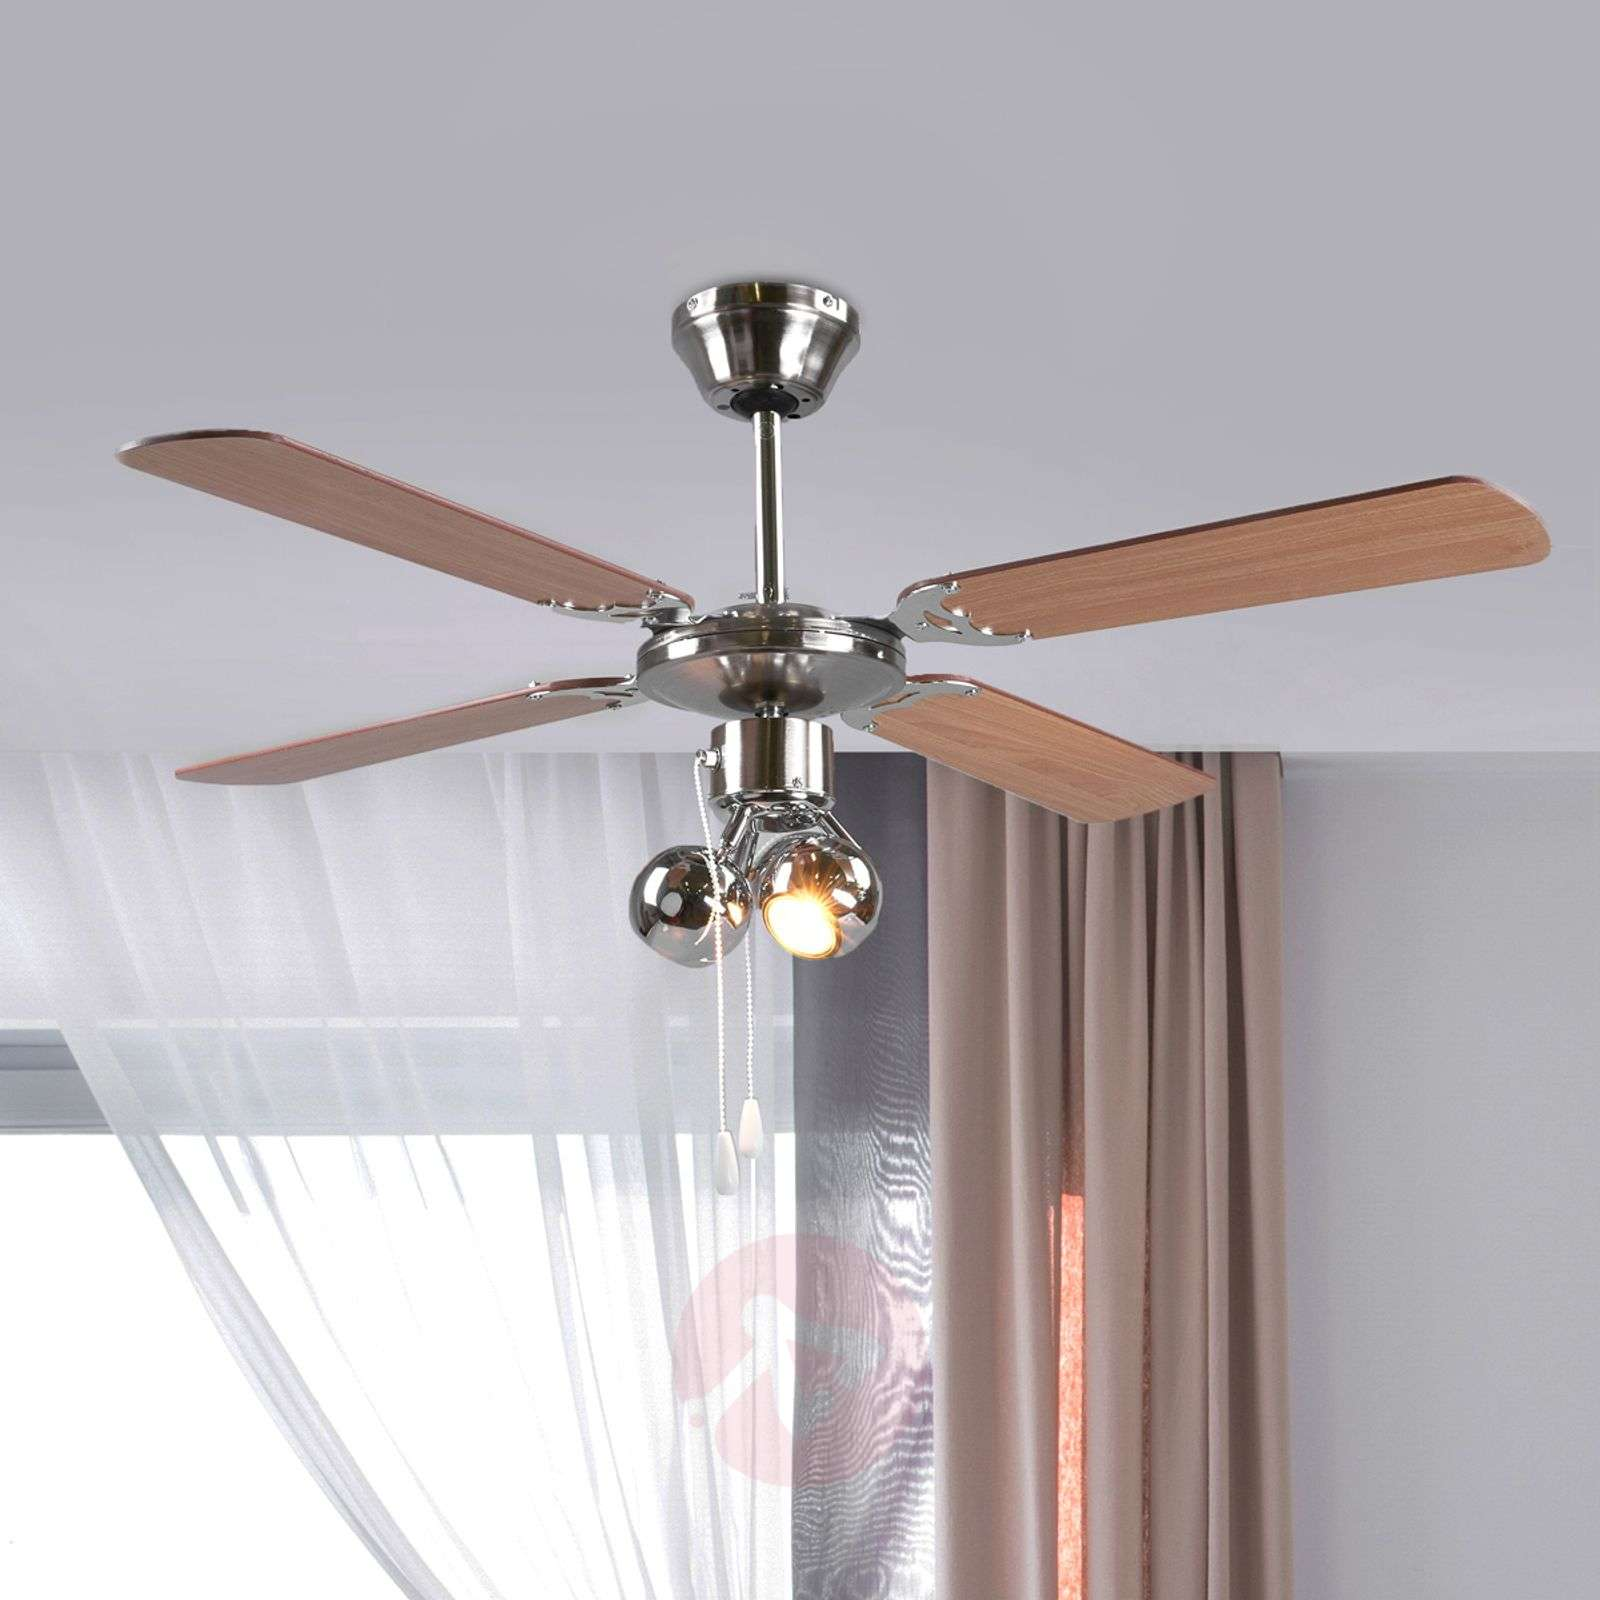 Buy Ceiling Fans with Lighting online from Lights